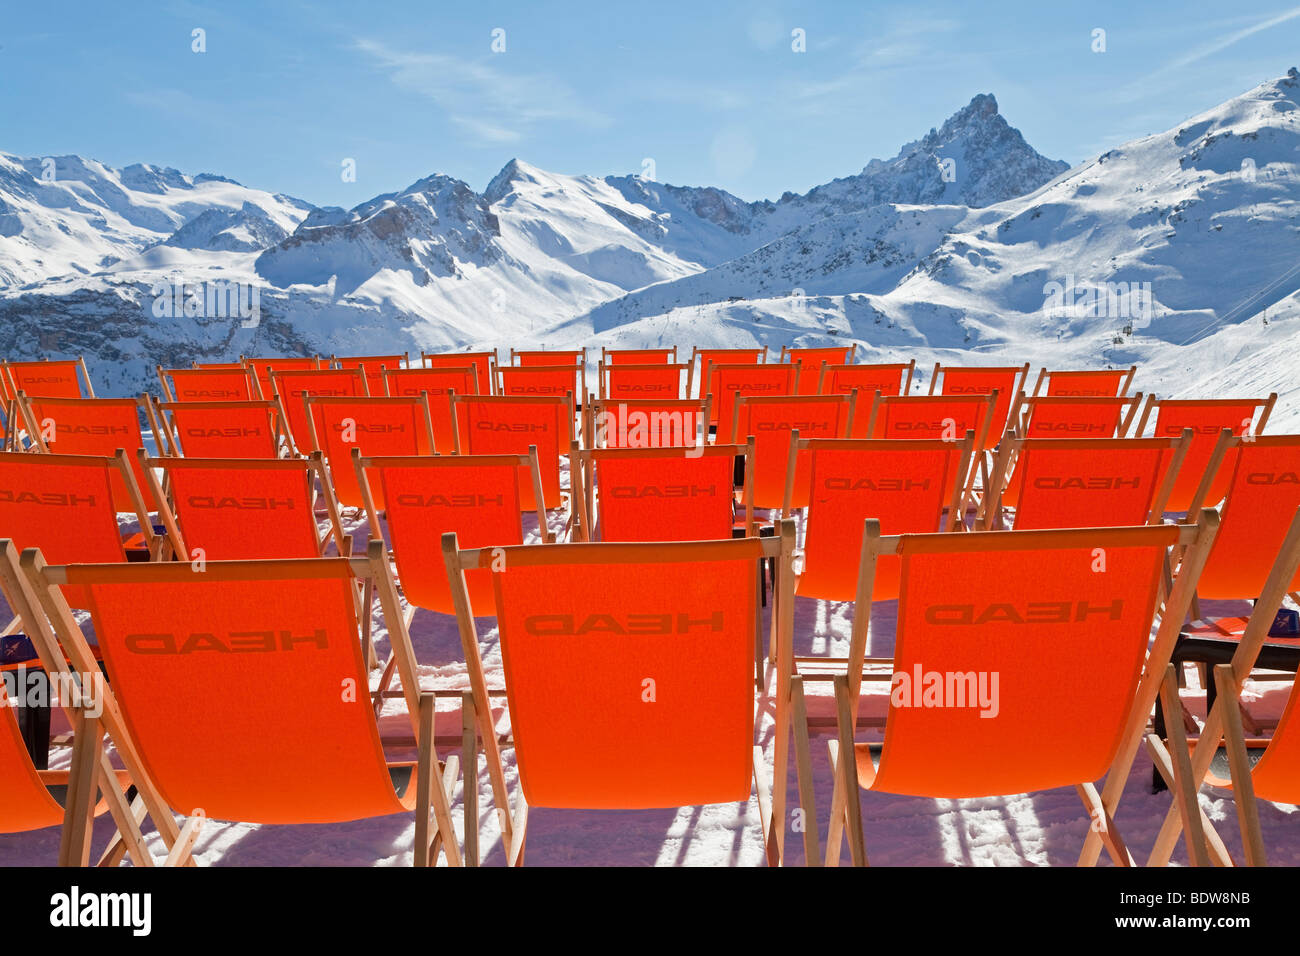 Sun loungers, Courchevel 1850 ski resort, Three Valleys, Les Trois Vallees, Savoie, French Alps, France - Stock Image